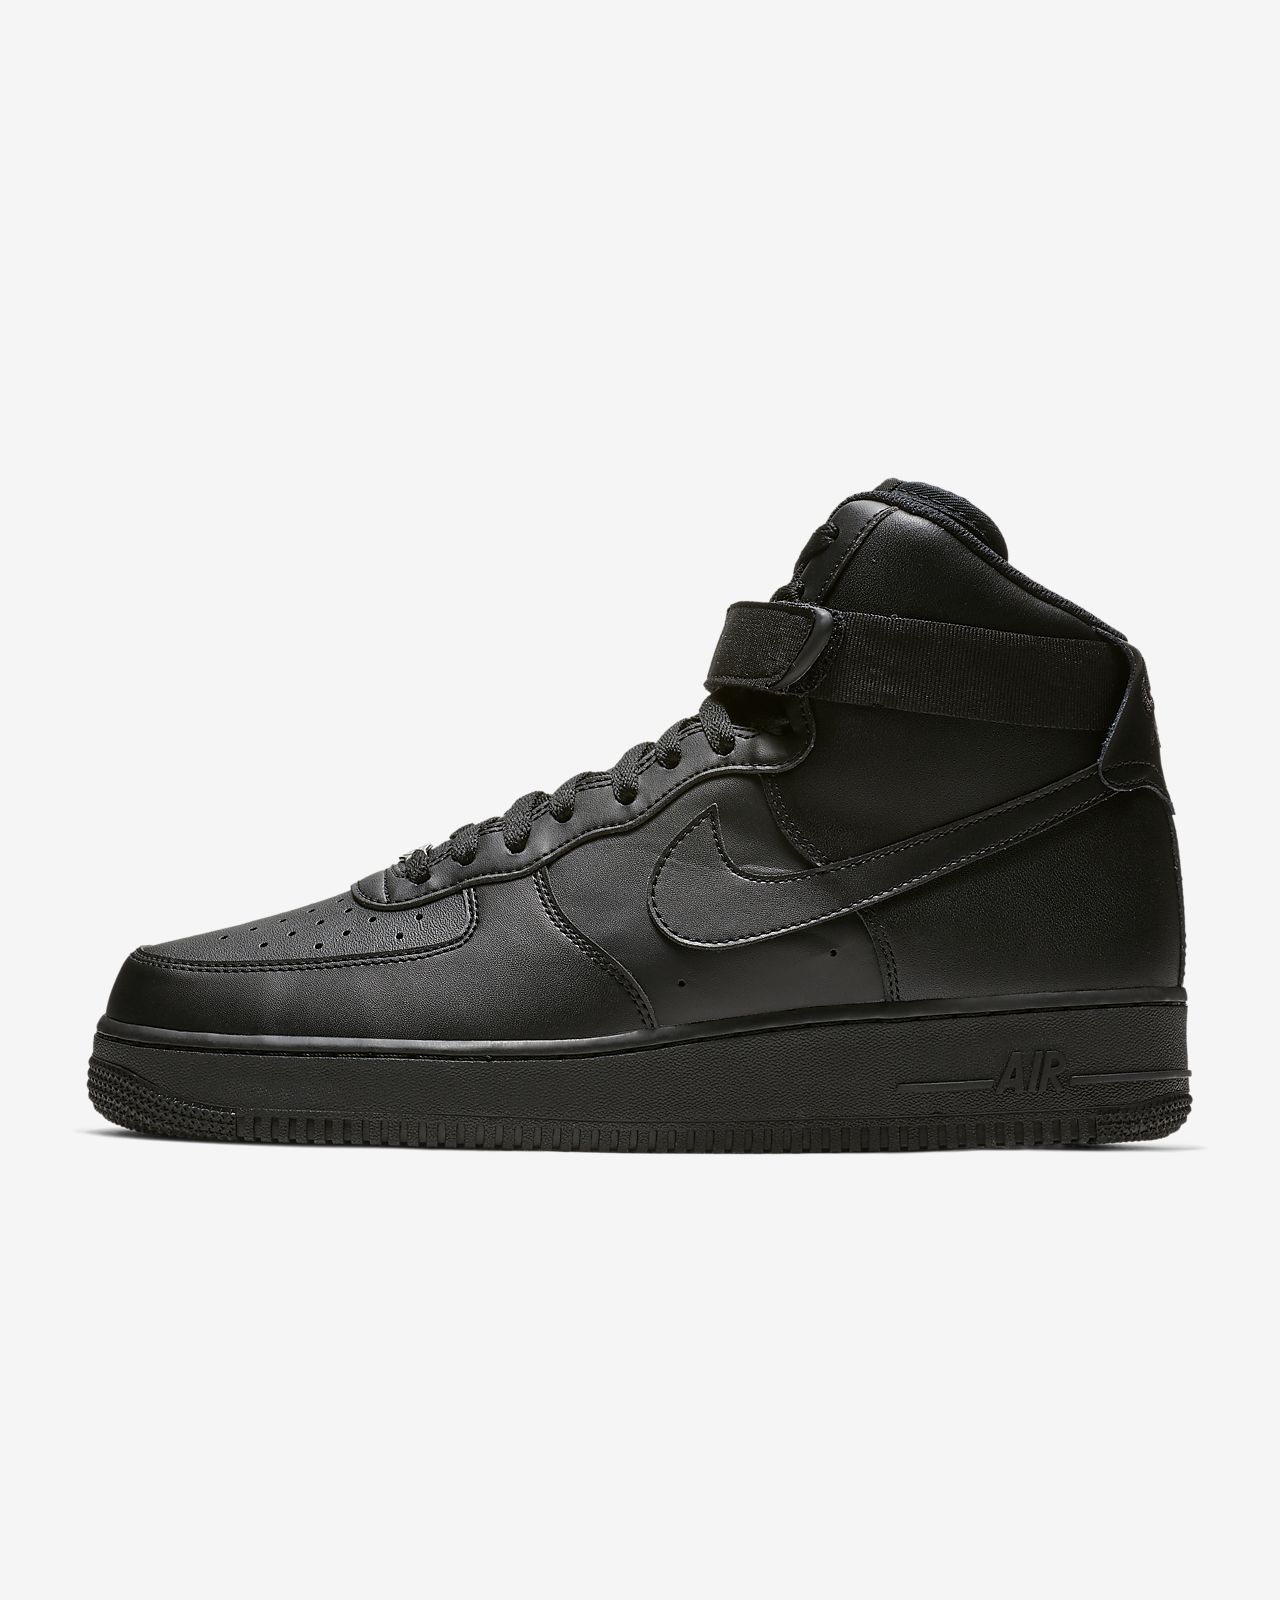 meilleur service 6e083 93696 Nike Air Force 1 High 07 Men's Shoe